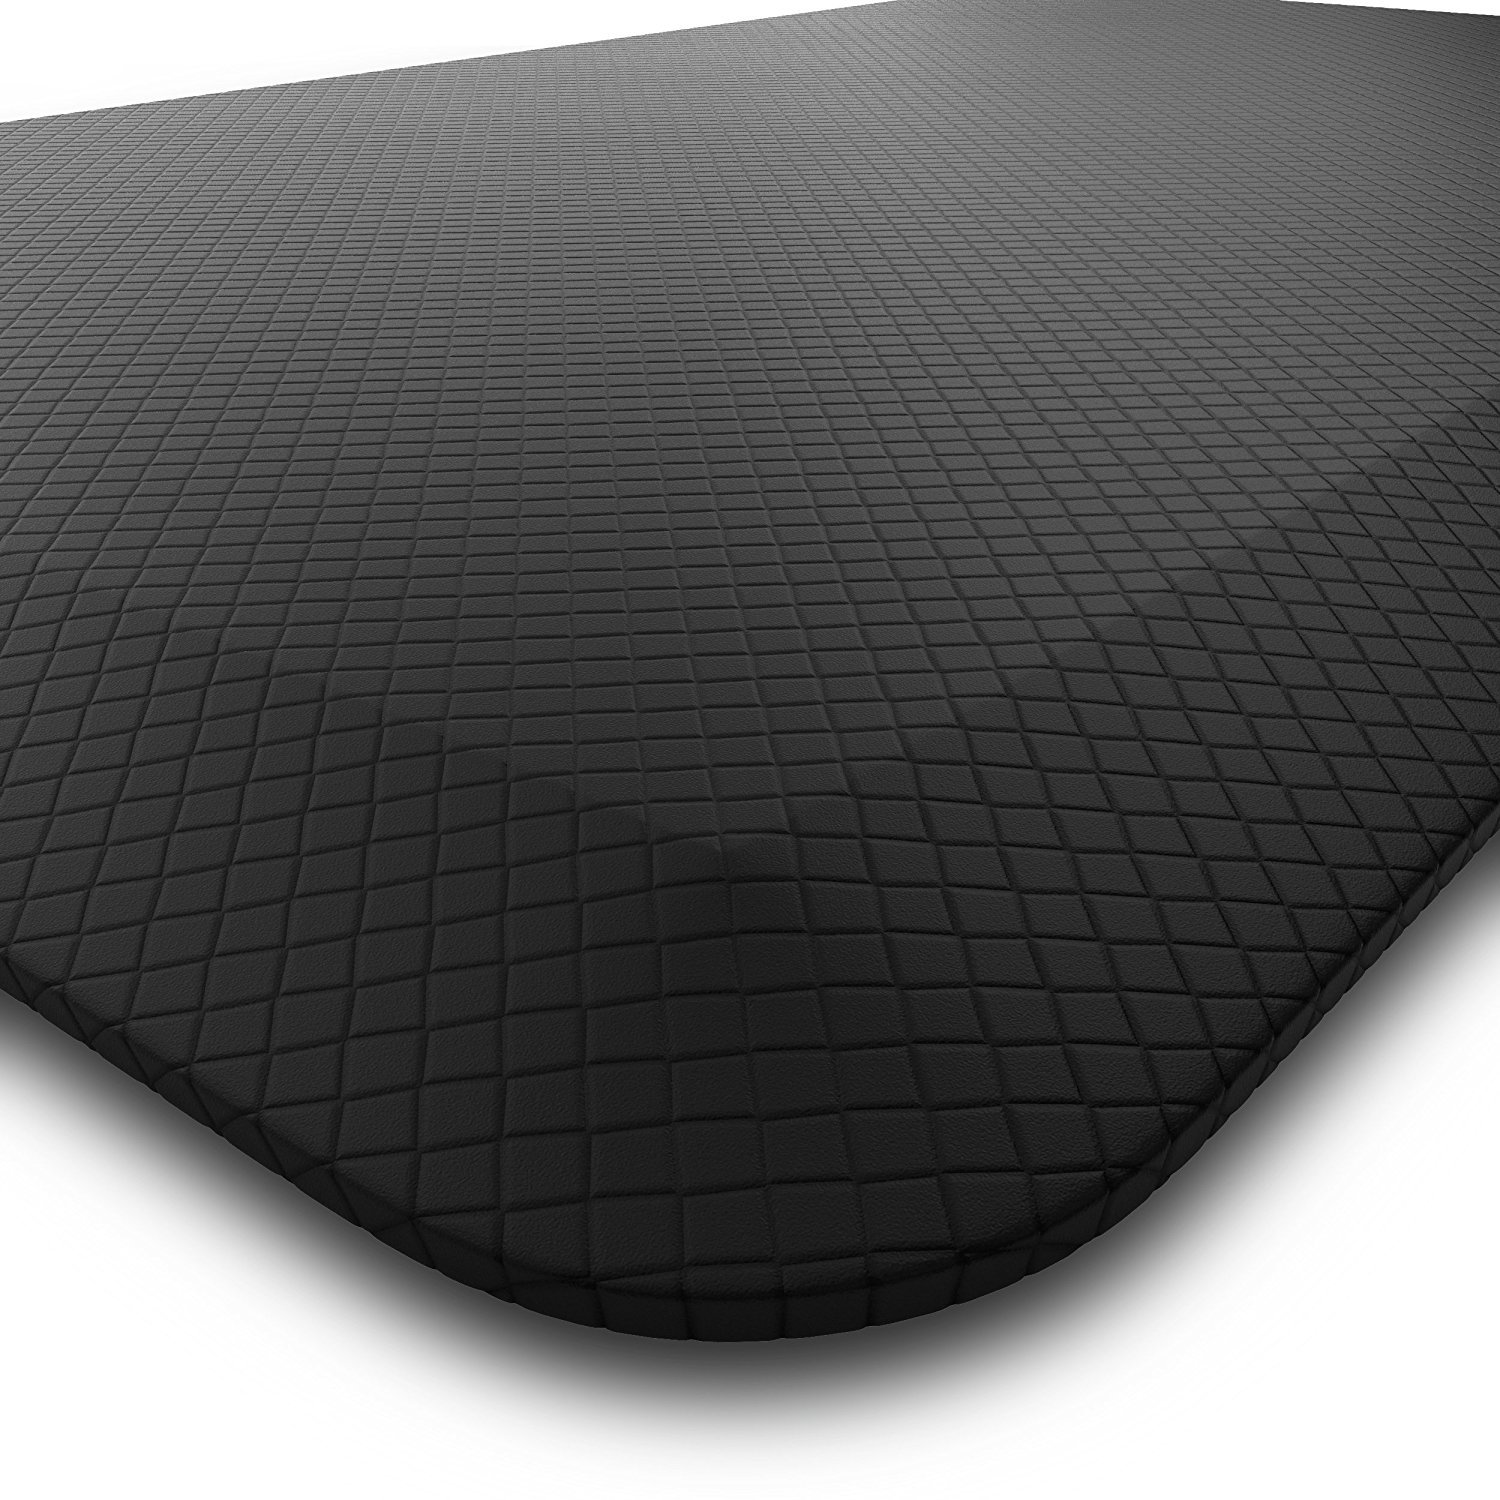 Homey Brands Anti Fatigue Kitchen Sink Mat   Large 20 x 39 Non Slip Standing Mat   Perfect for Home, Office, Garage, Hair Salon and More, Non-Toxic, Waterproof